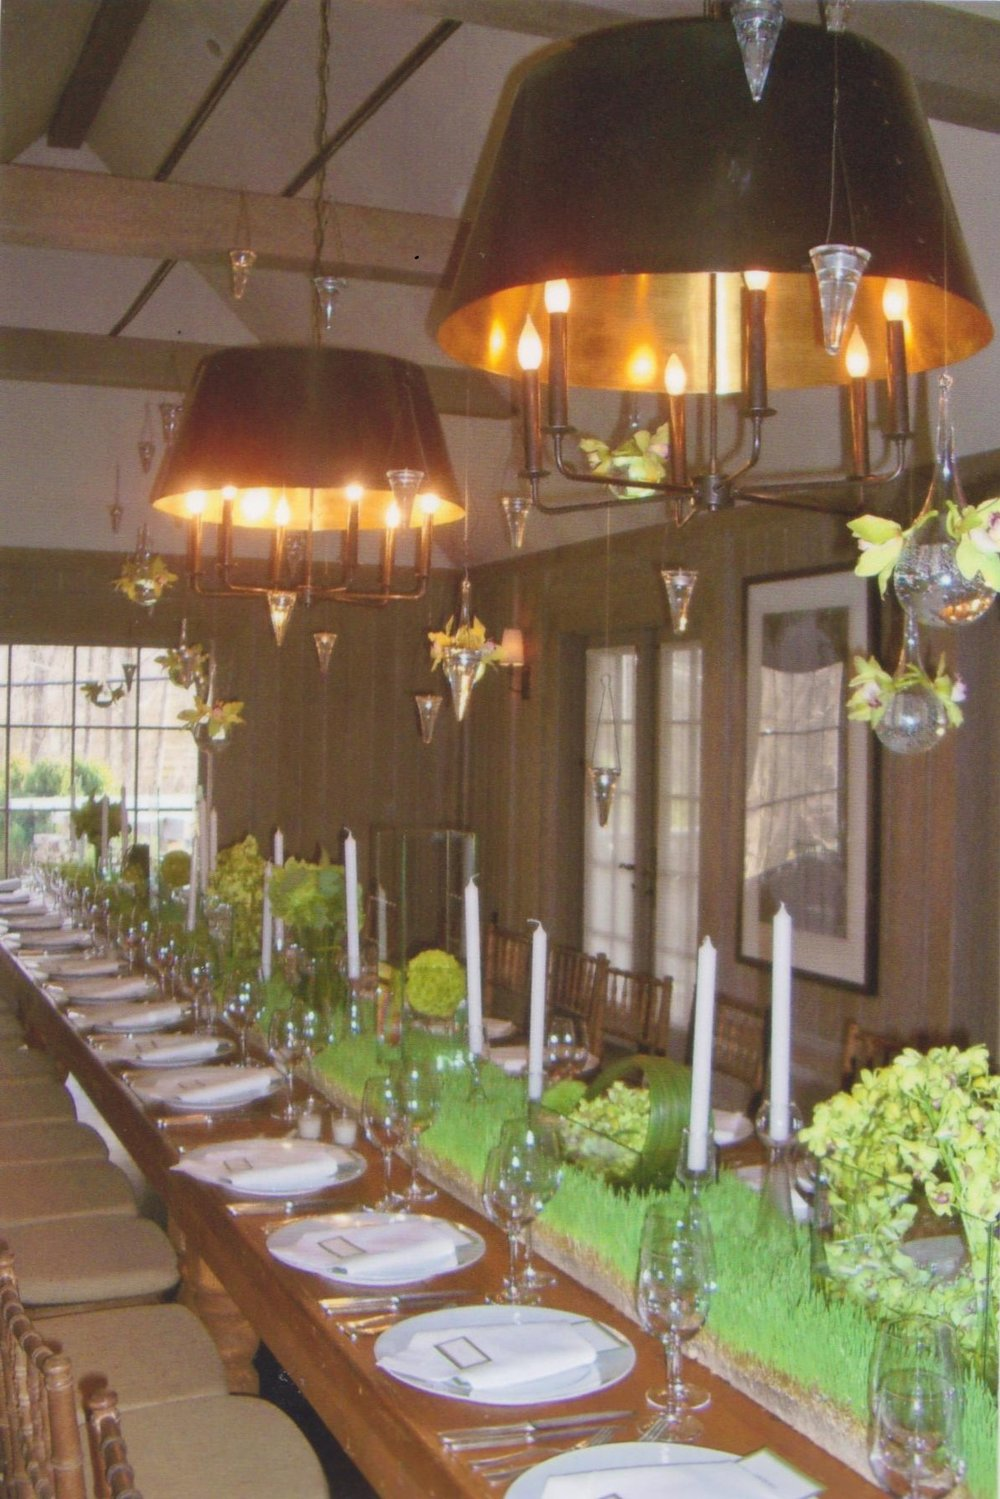 Bedford Post - Private Dining Room - Alpert Party